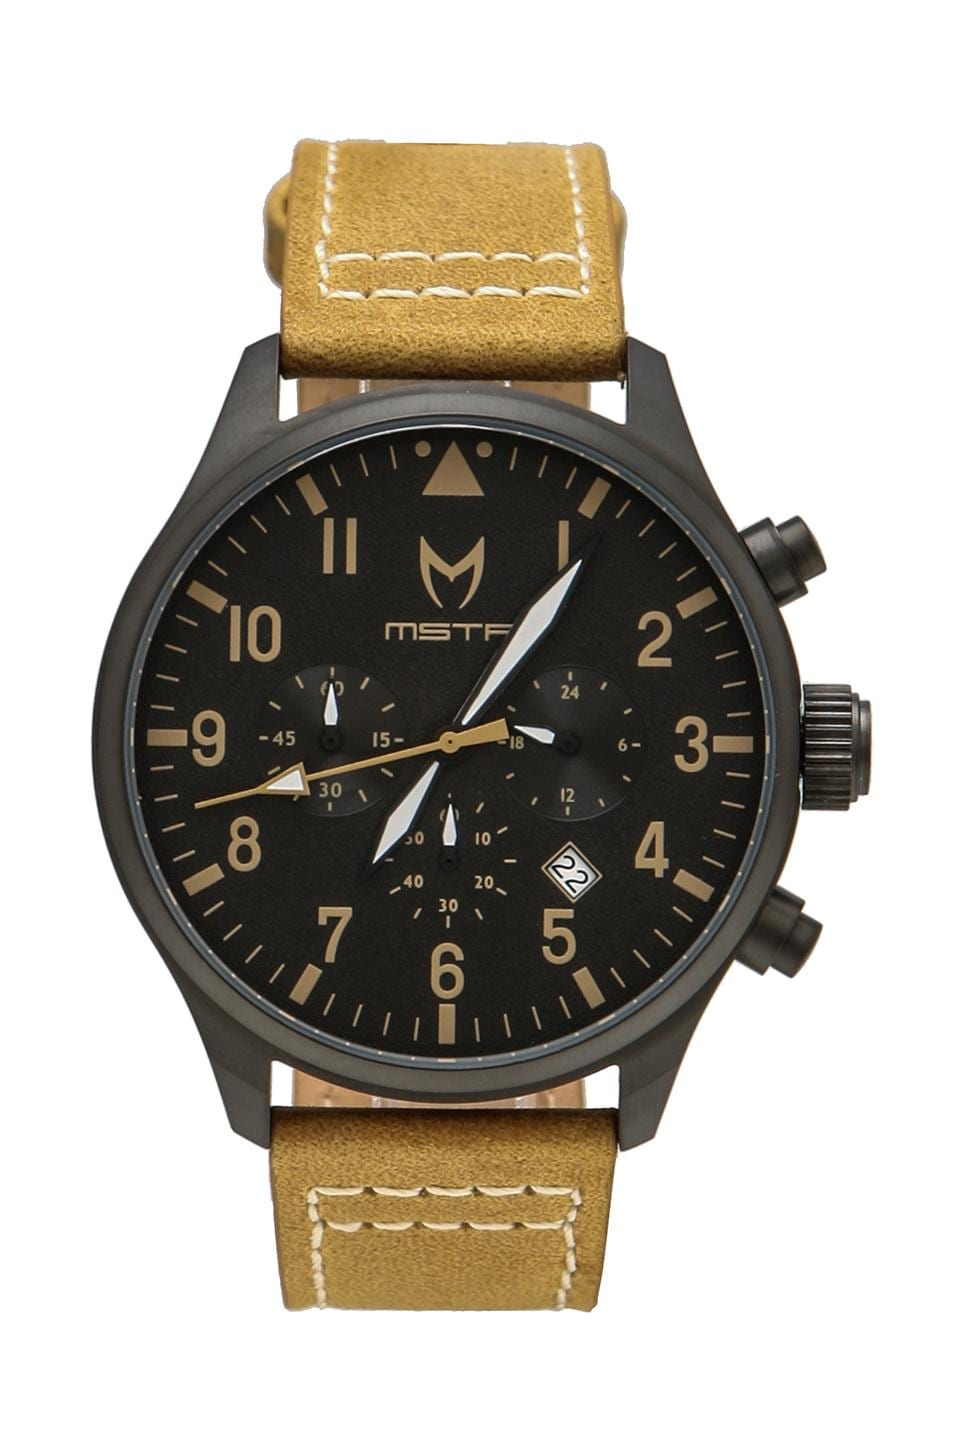 Meister Aviator Tan Leather Band in Black/Tan Leather